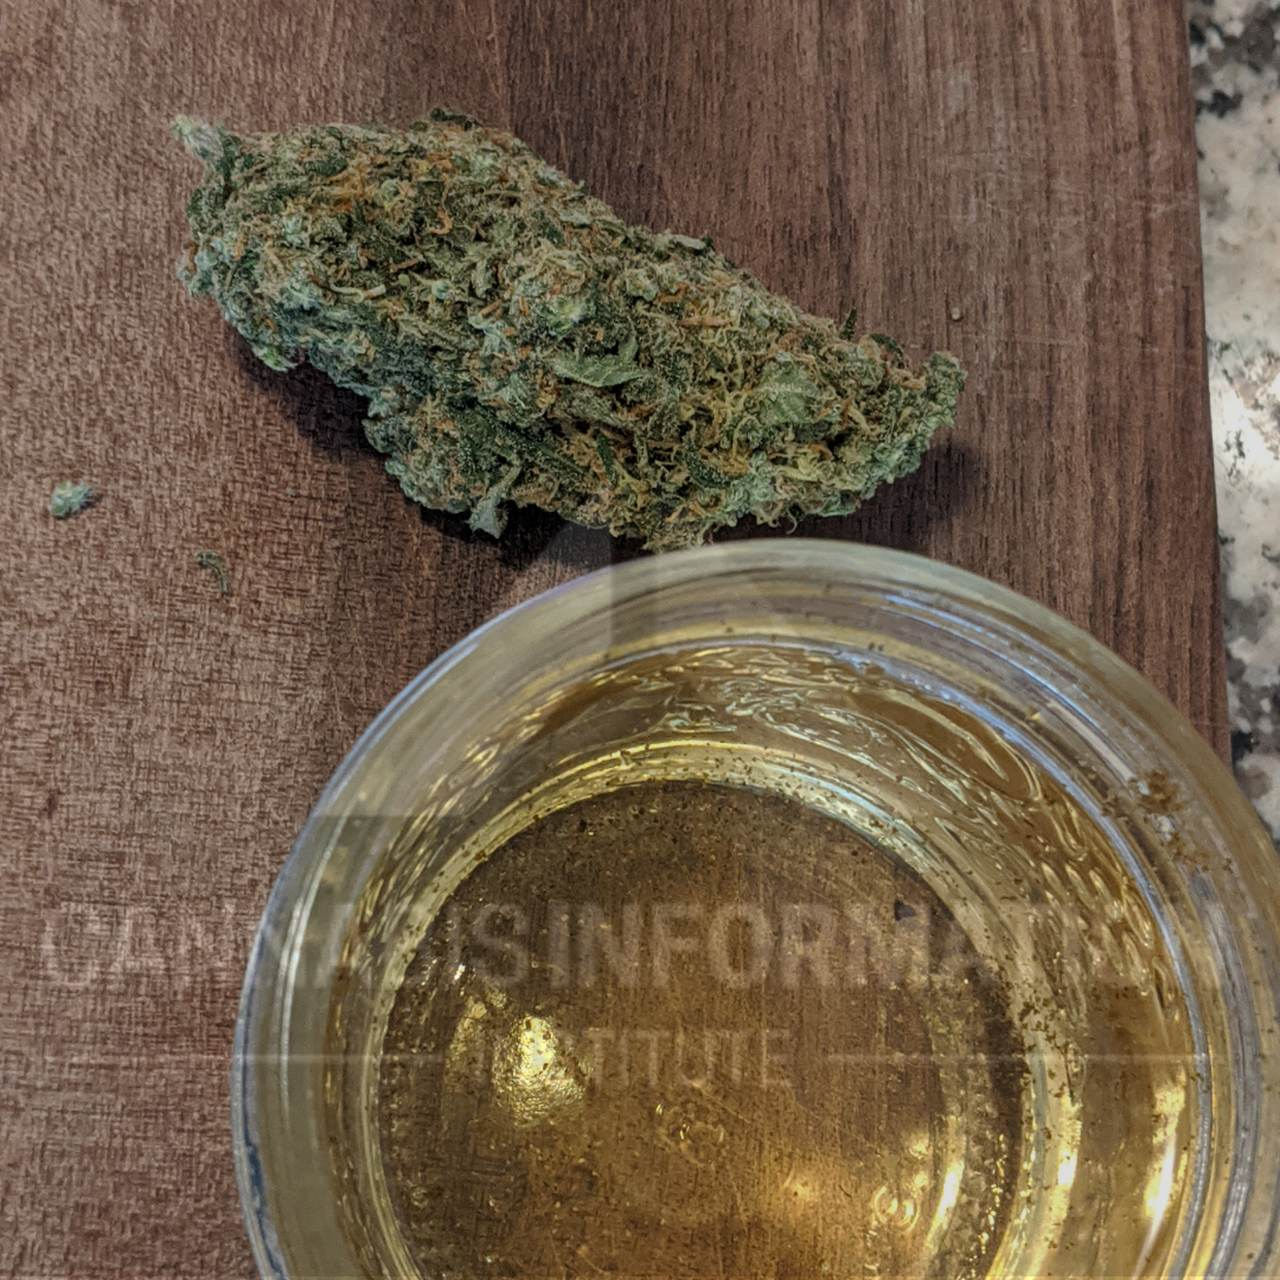 weed edibles info, info about edibles, canna edibles easy recipes, edibles information, edicles education, cannabis edibles 101, facts about cannabis edibles, edible weed candy, how to make edibles, long term effects of edibles, types of edibles , what are the side effects of edibles?, benefits of edibles, cbd edibles, are edibles legal, cannabis edibles, which fat absorbs the most THC? canna oil baking recipes, canna oil ratio, cannabis butter, cannabis coconut oil, cannabis edibles, Cannabis info, cannabis infused butter, cannabis infused oil, cannabis oil, cannabutter easy, cannabutter easy recipe, cannabutter recipe, CBD, flower to oil ratio, how long to cook canna oil on stove, how to infuse mct oil, how to make 1/3 cup of canna-oil, illnesses helped by cannabis, Lifestyle, marijuana coconut oil, Nutrition, olive oil tincture recipe, recipes using canna oil, simple cannabis butter, simple cannabis butter recipe, THC, which fat is best for cannabis edibles? does butter absorb the most THC? does coconut oil absorb more THC than butter?how to make a test batch of cannabis oil, how to make potent canna coconut oil, how to make canna oil fast, what color should canna coconut oil be, flower to oil ratio, how to make cannabis oil, easy cannabis oil method, small batch cannabis oil, slow cooker cannabis oil, decarboxylation for cannabis edibles, decarbing weed for edibles, how to make weed oil small batch,